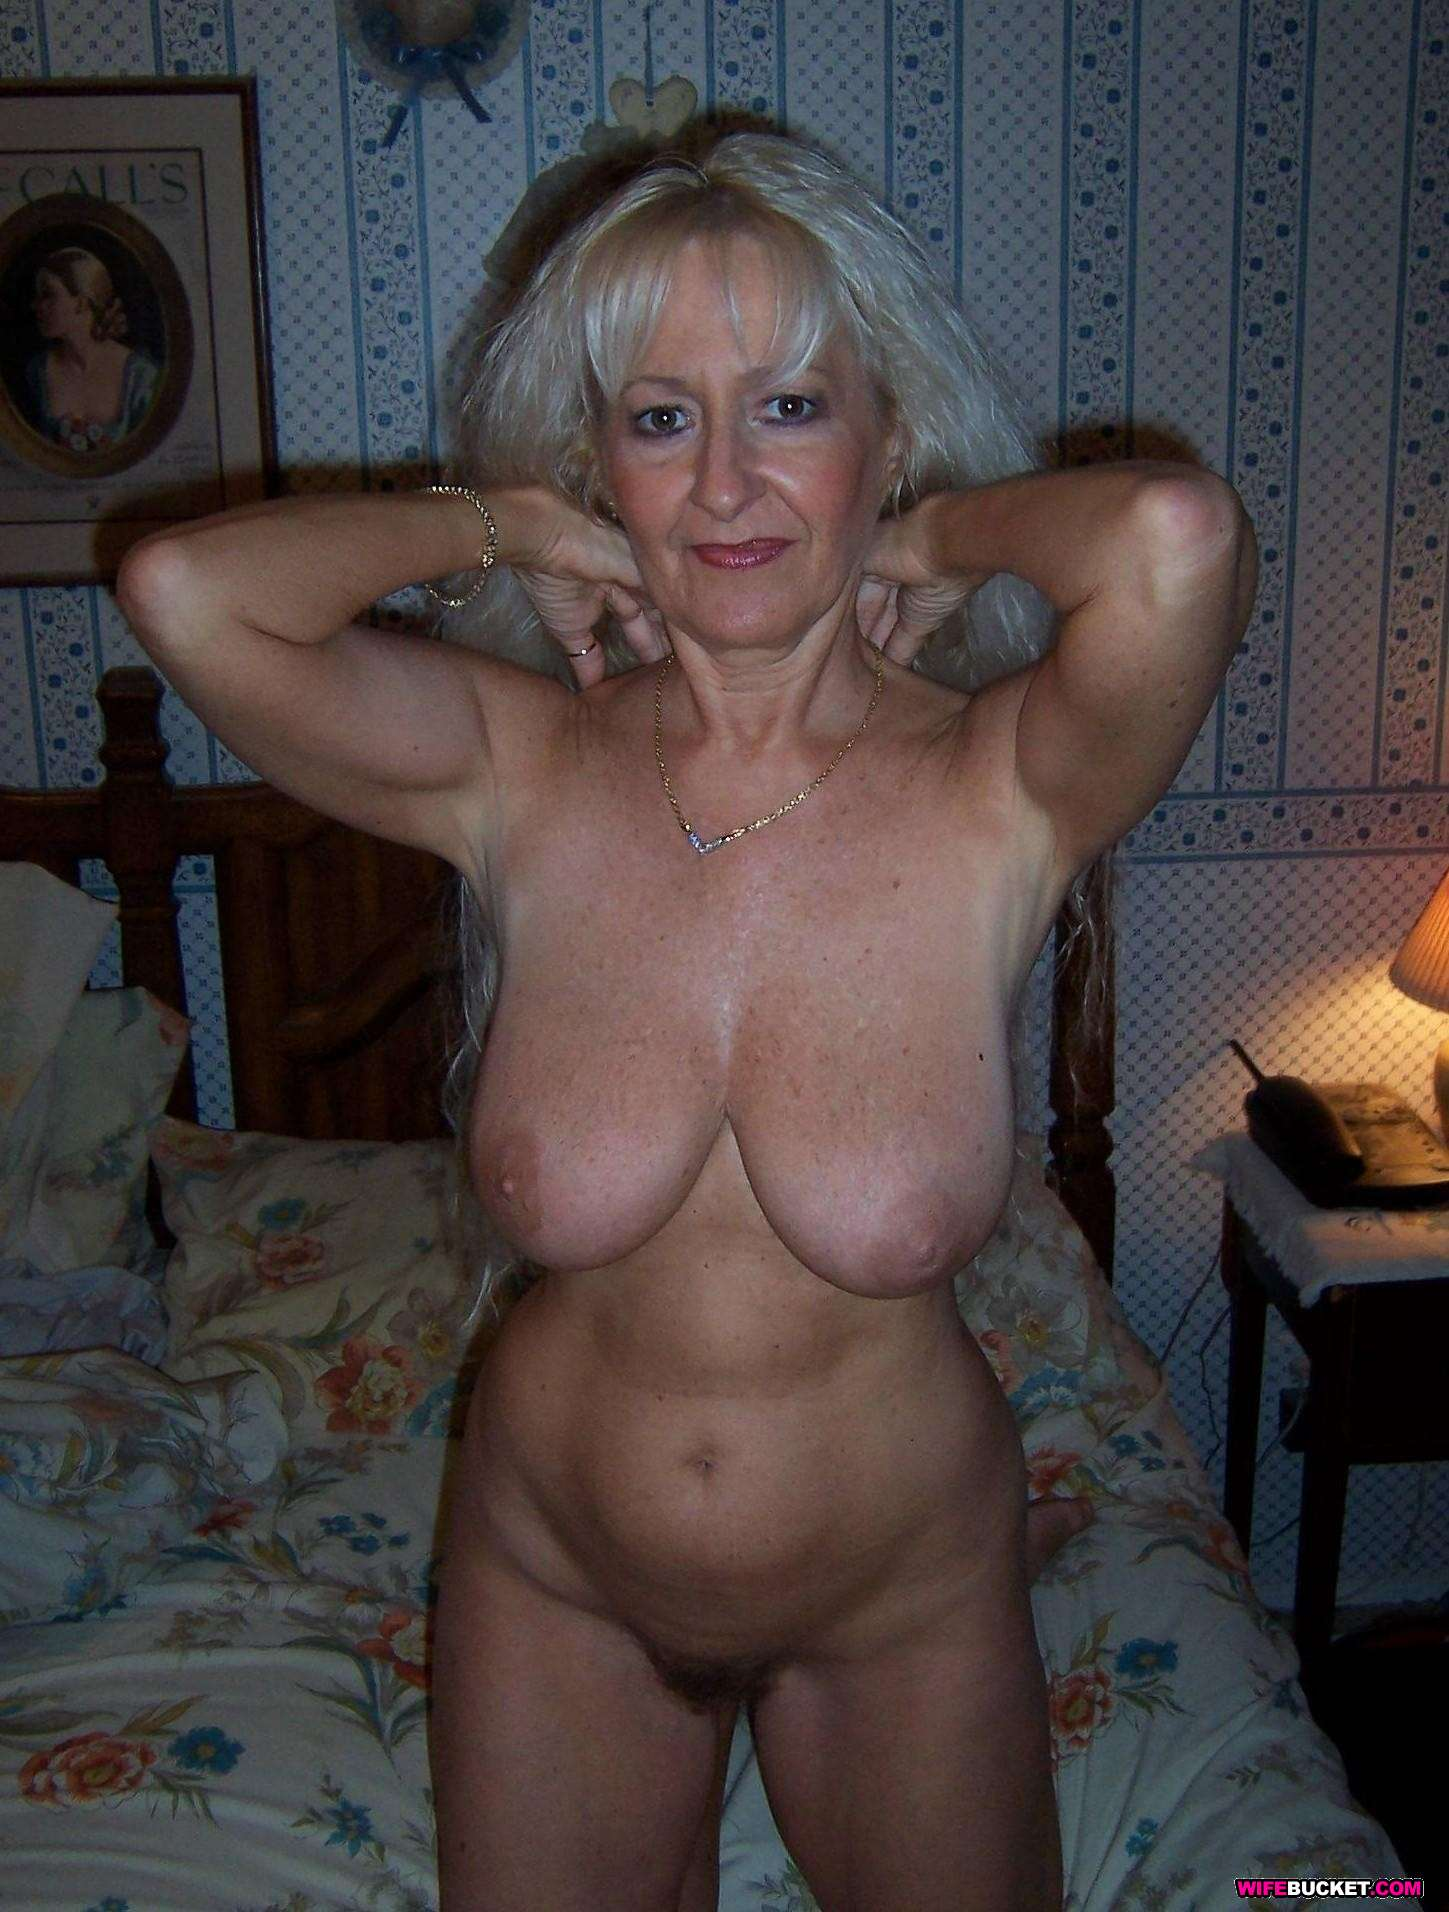 Short haired wife wants a different cock 4